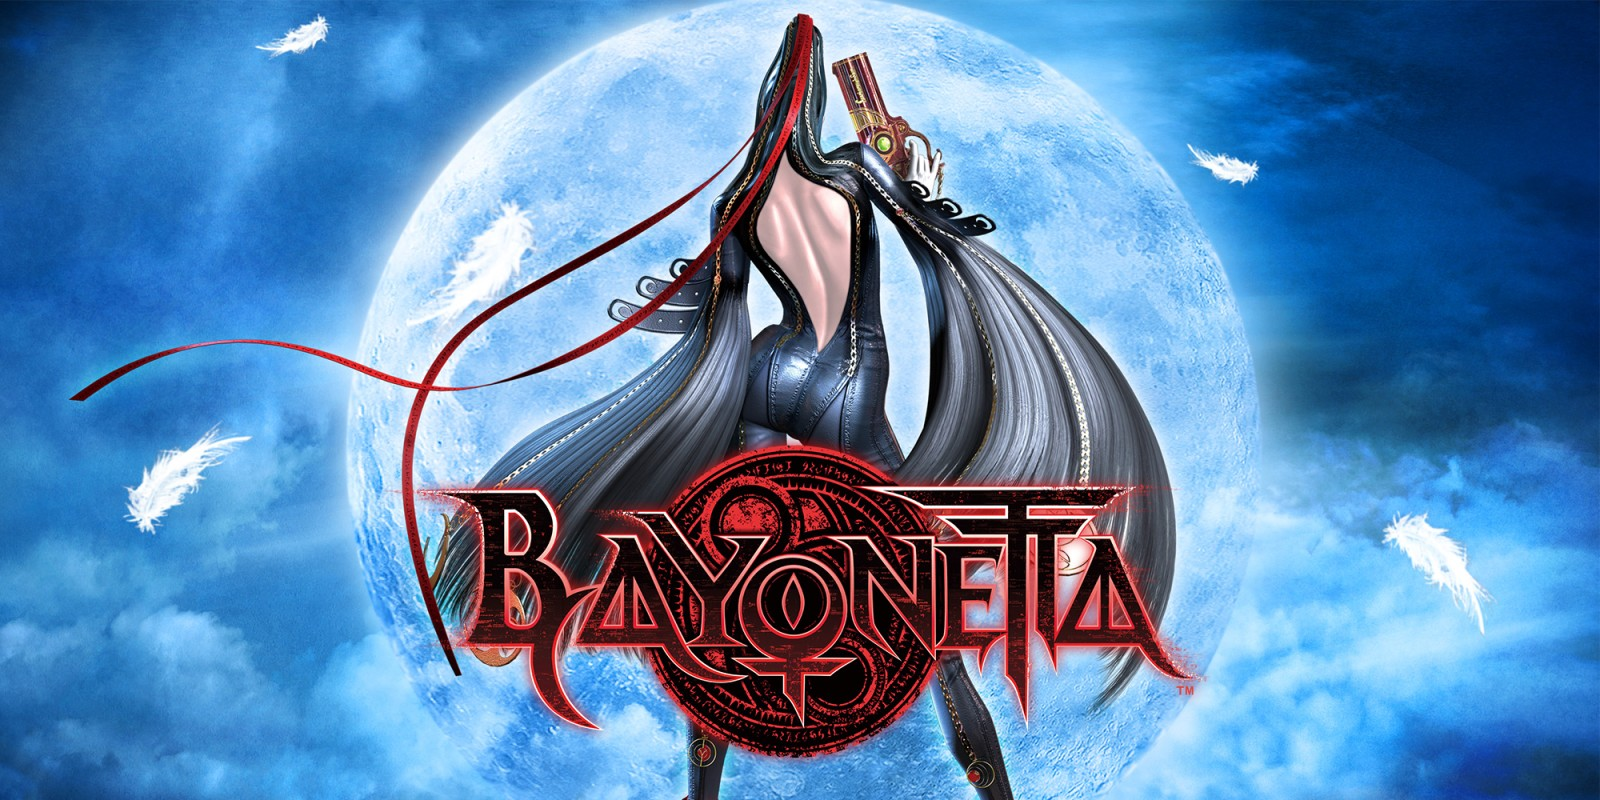 February Video Games releases 2018 Bayonetta Image